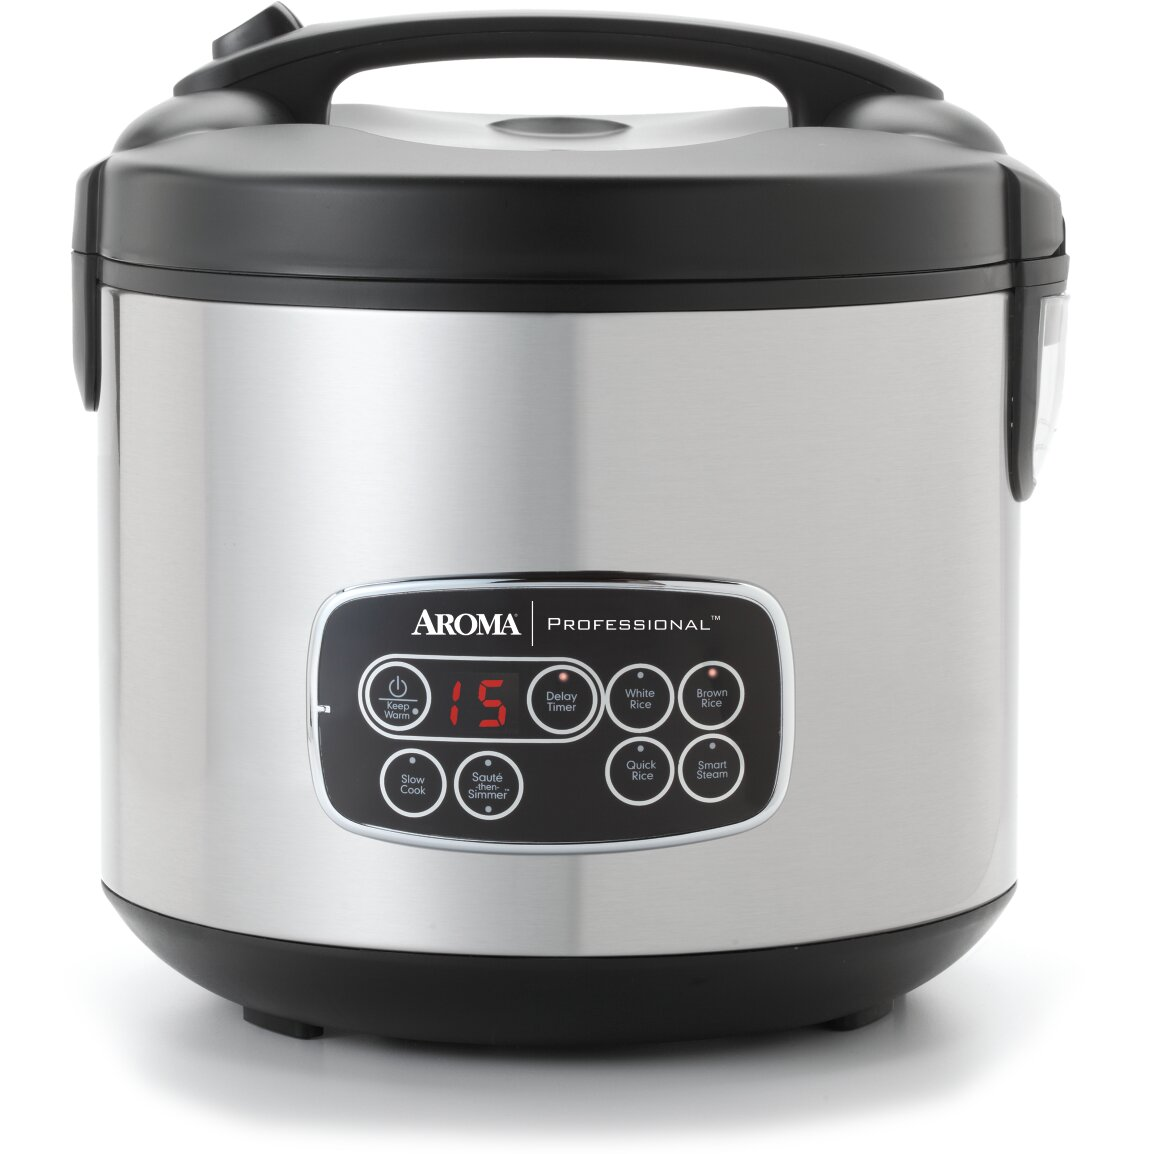 Aroma professional 20 cup digital cool touch multi cooker for Multi cooker